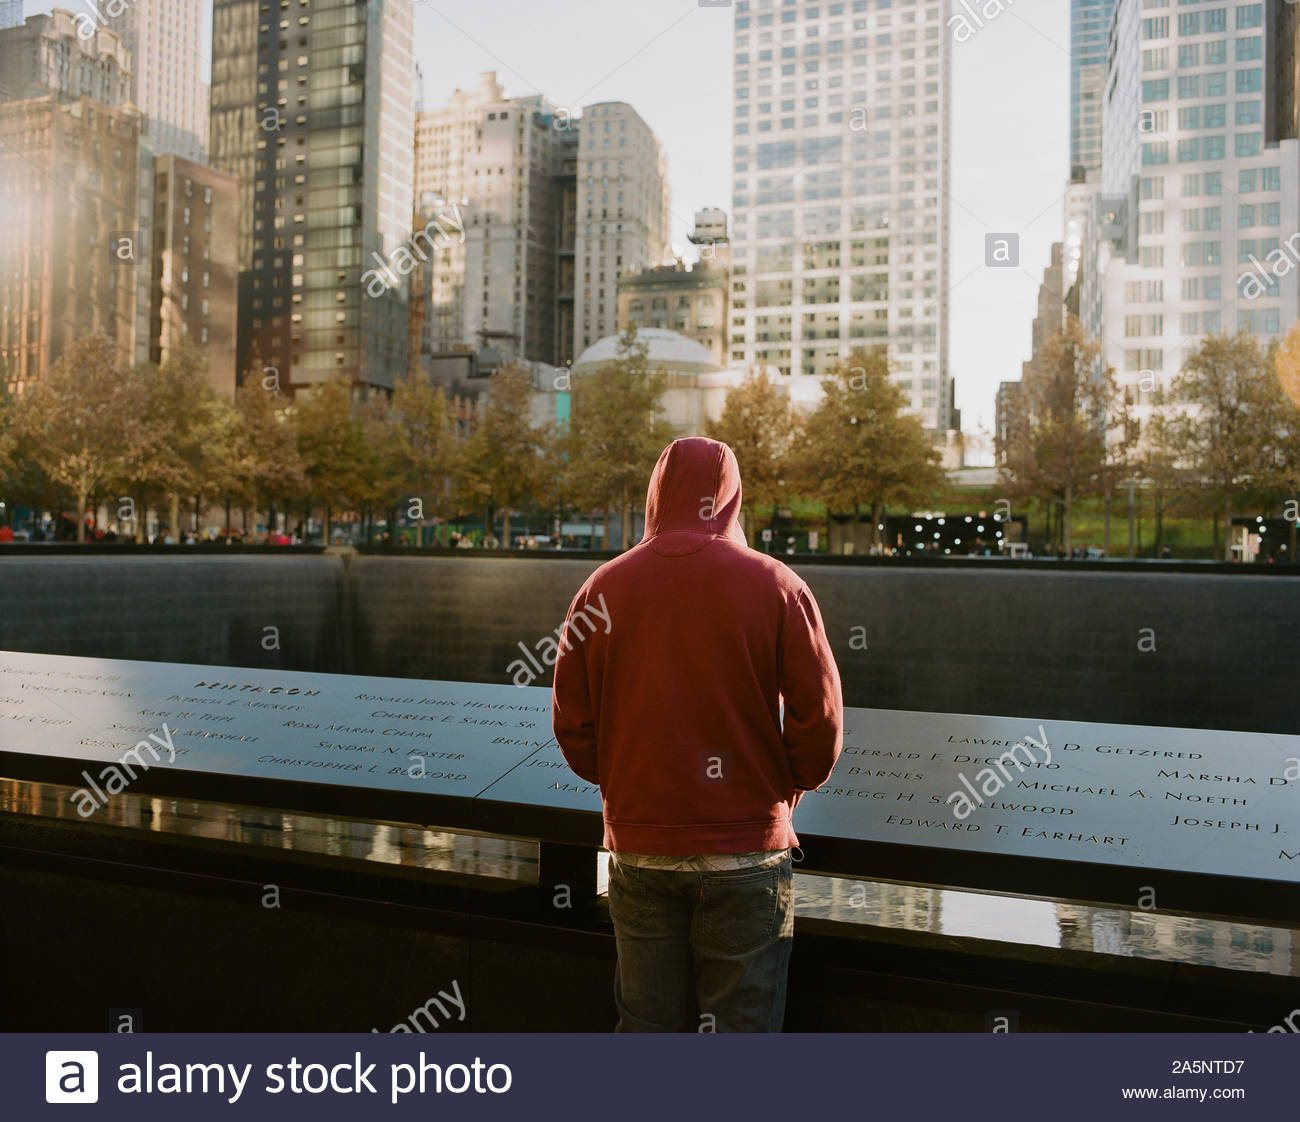 Man watching the northern pool of the National September 11 Memorial, New York City Stock Photo